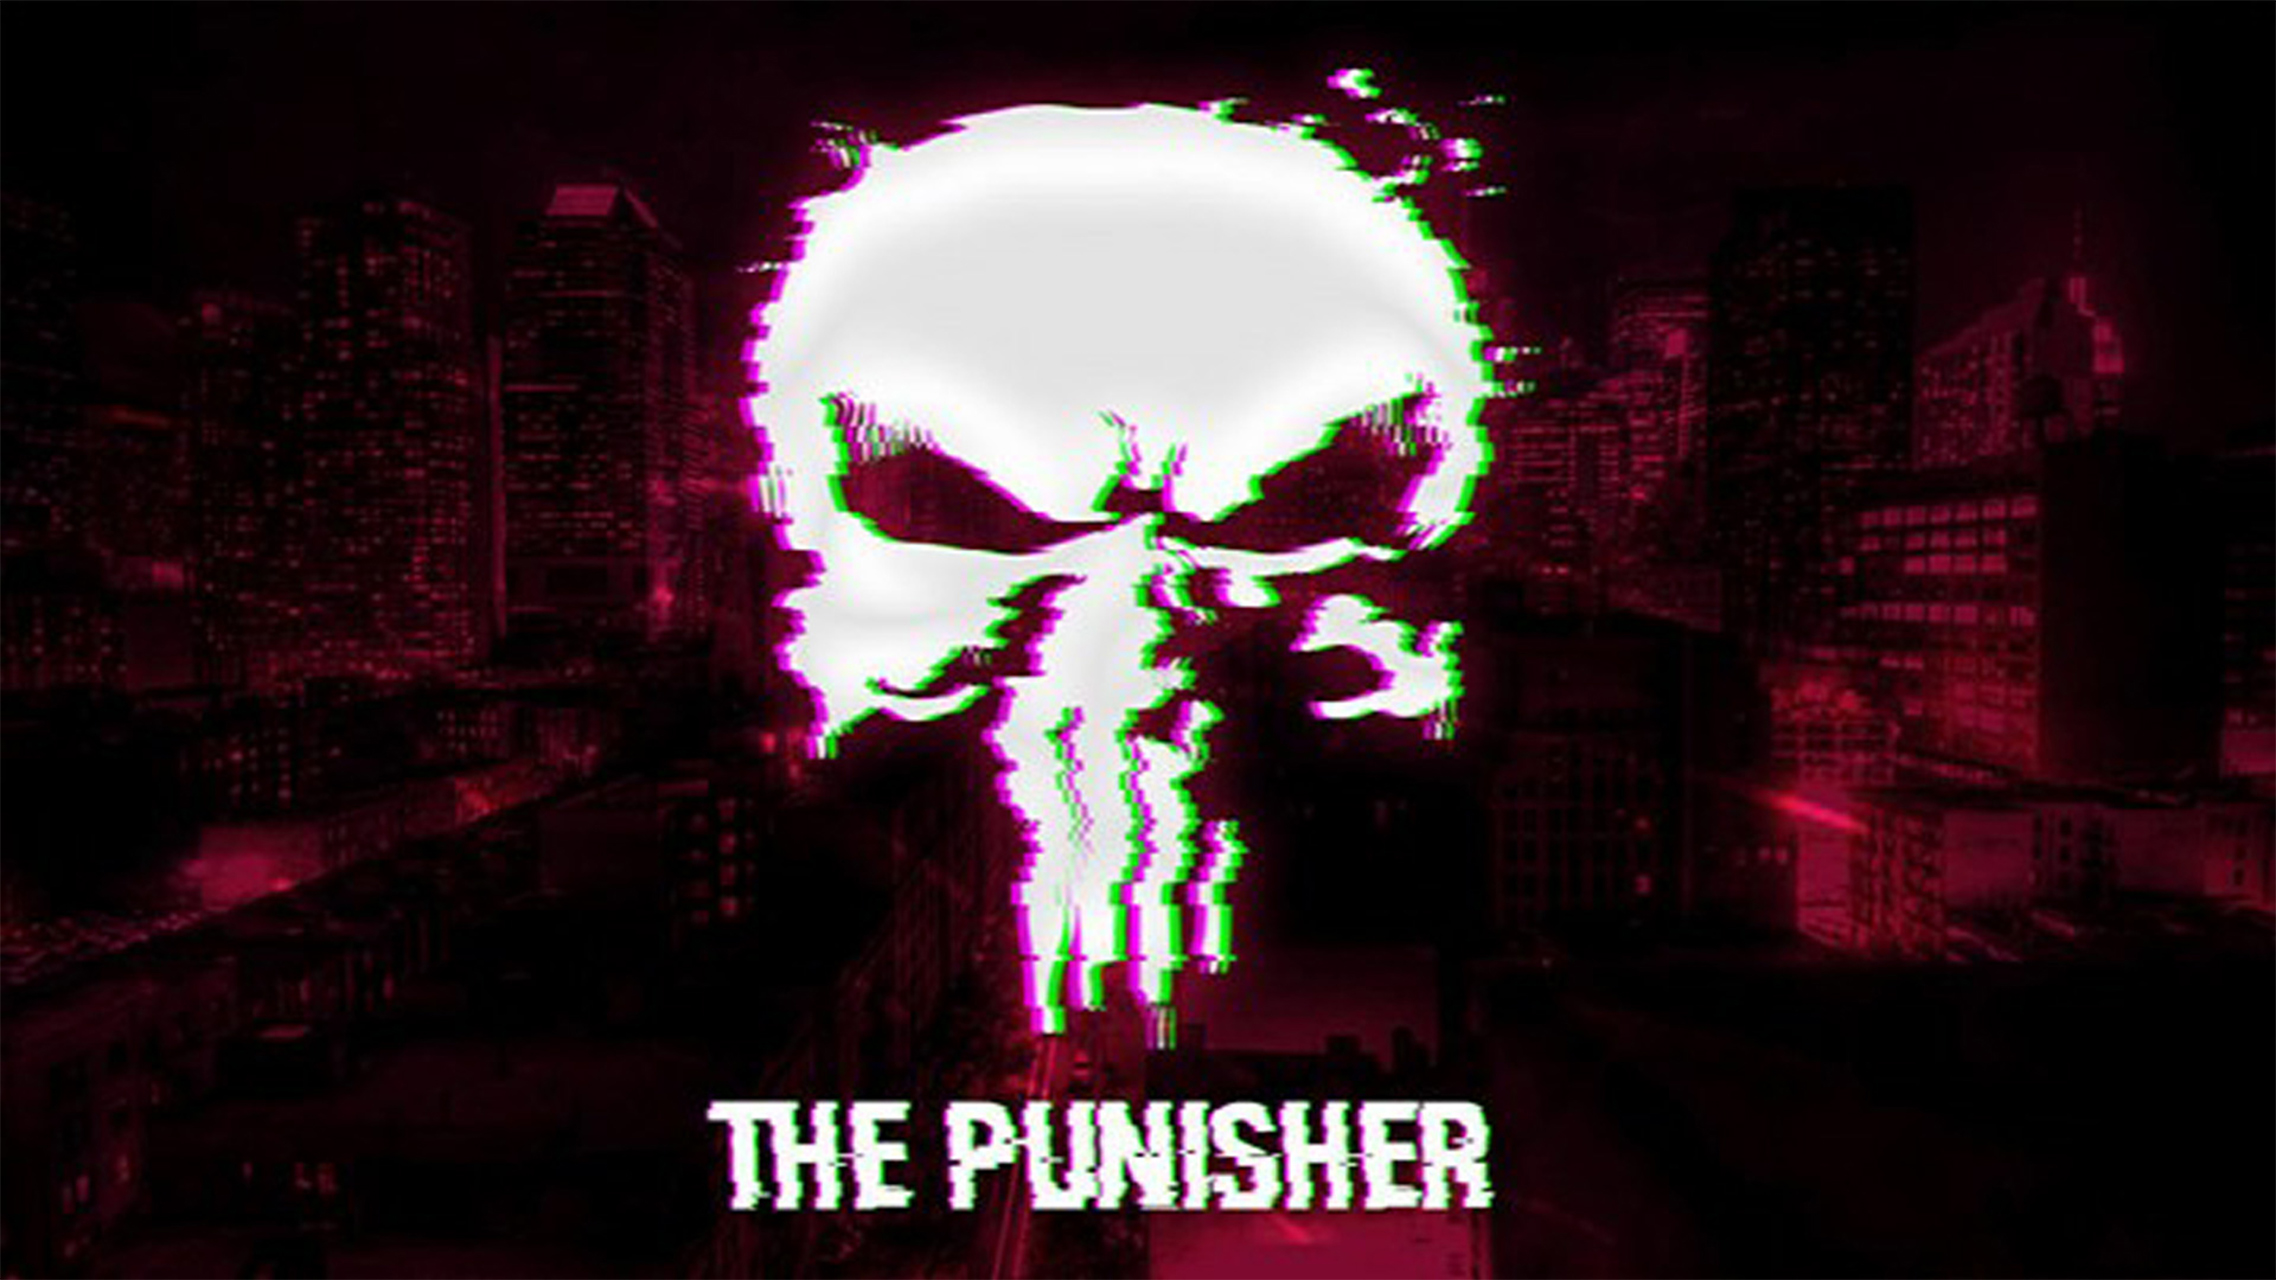 Graphisme - The Punisher